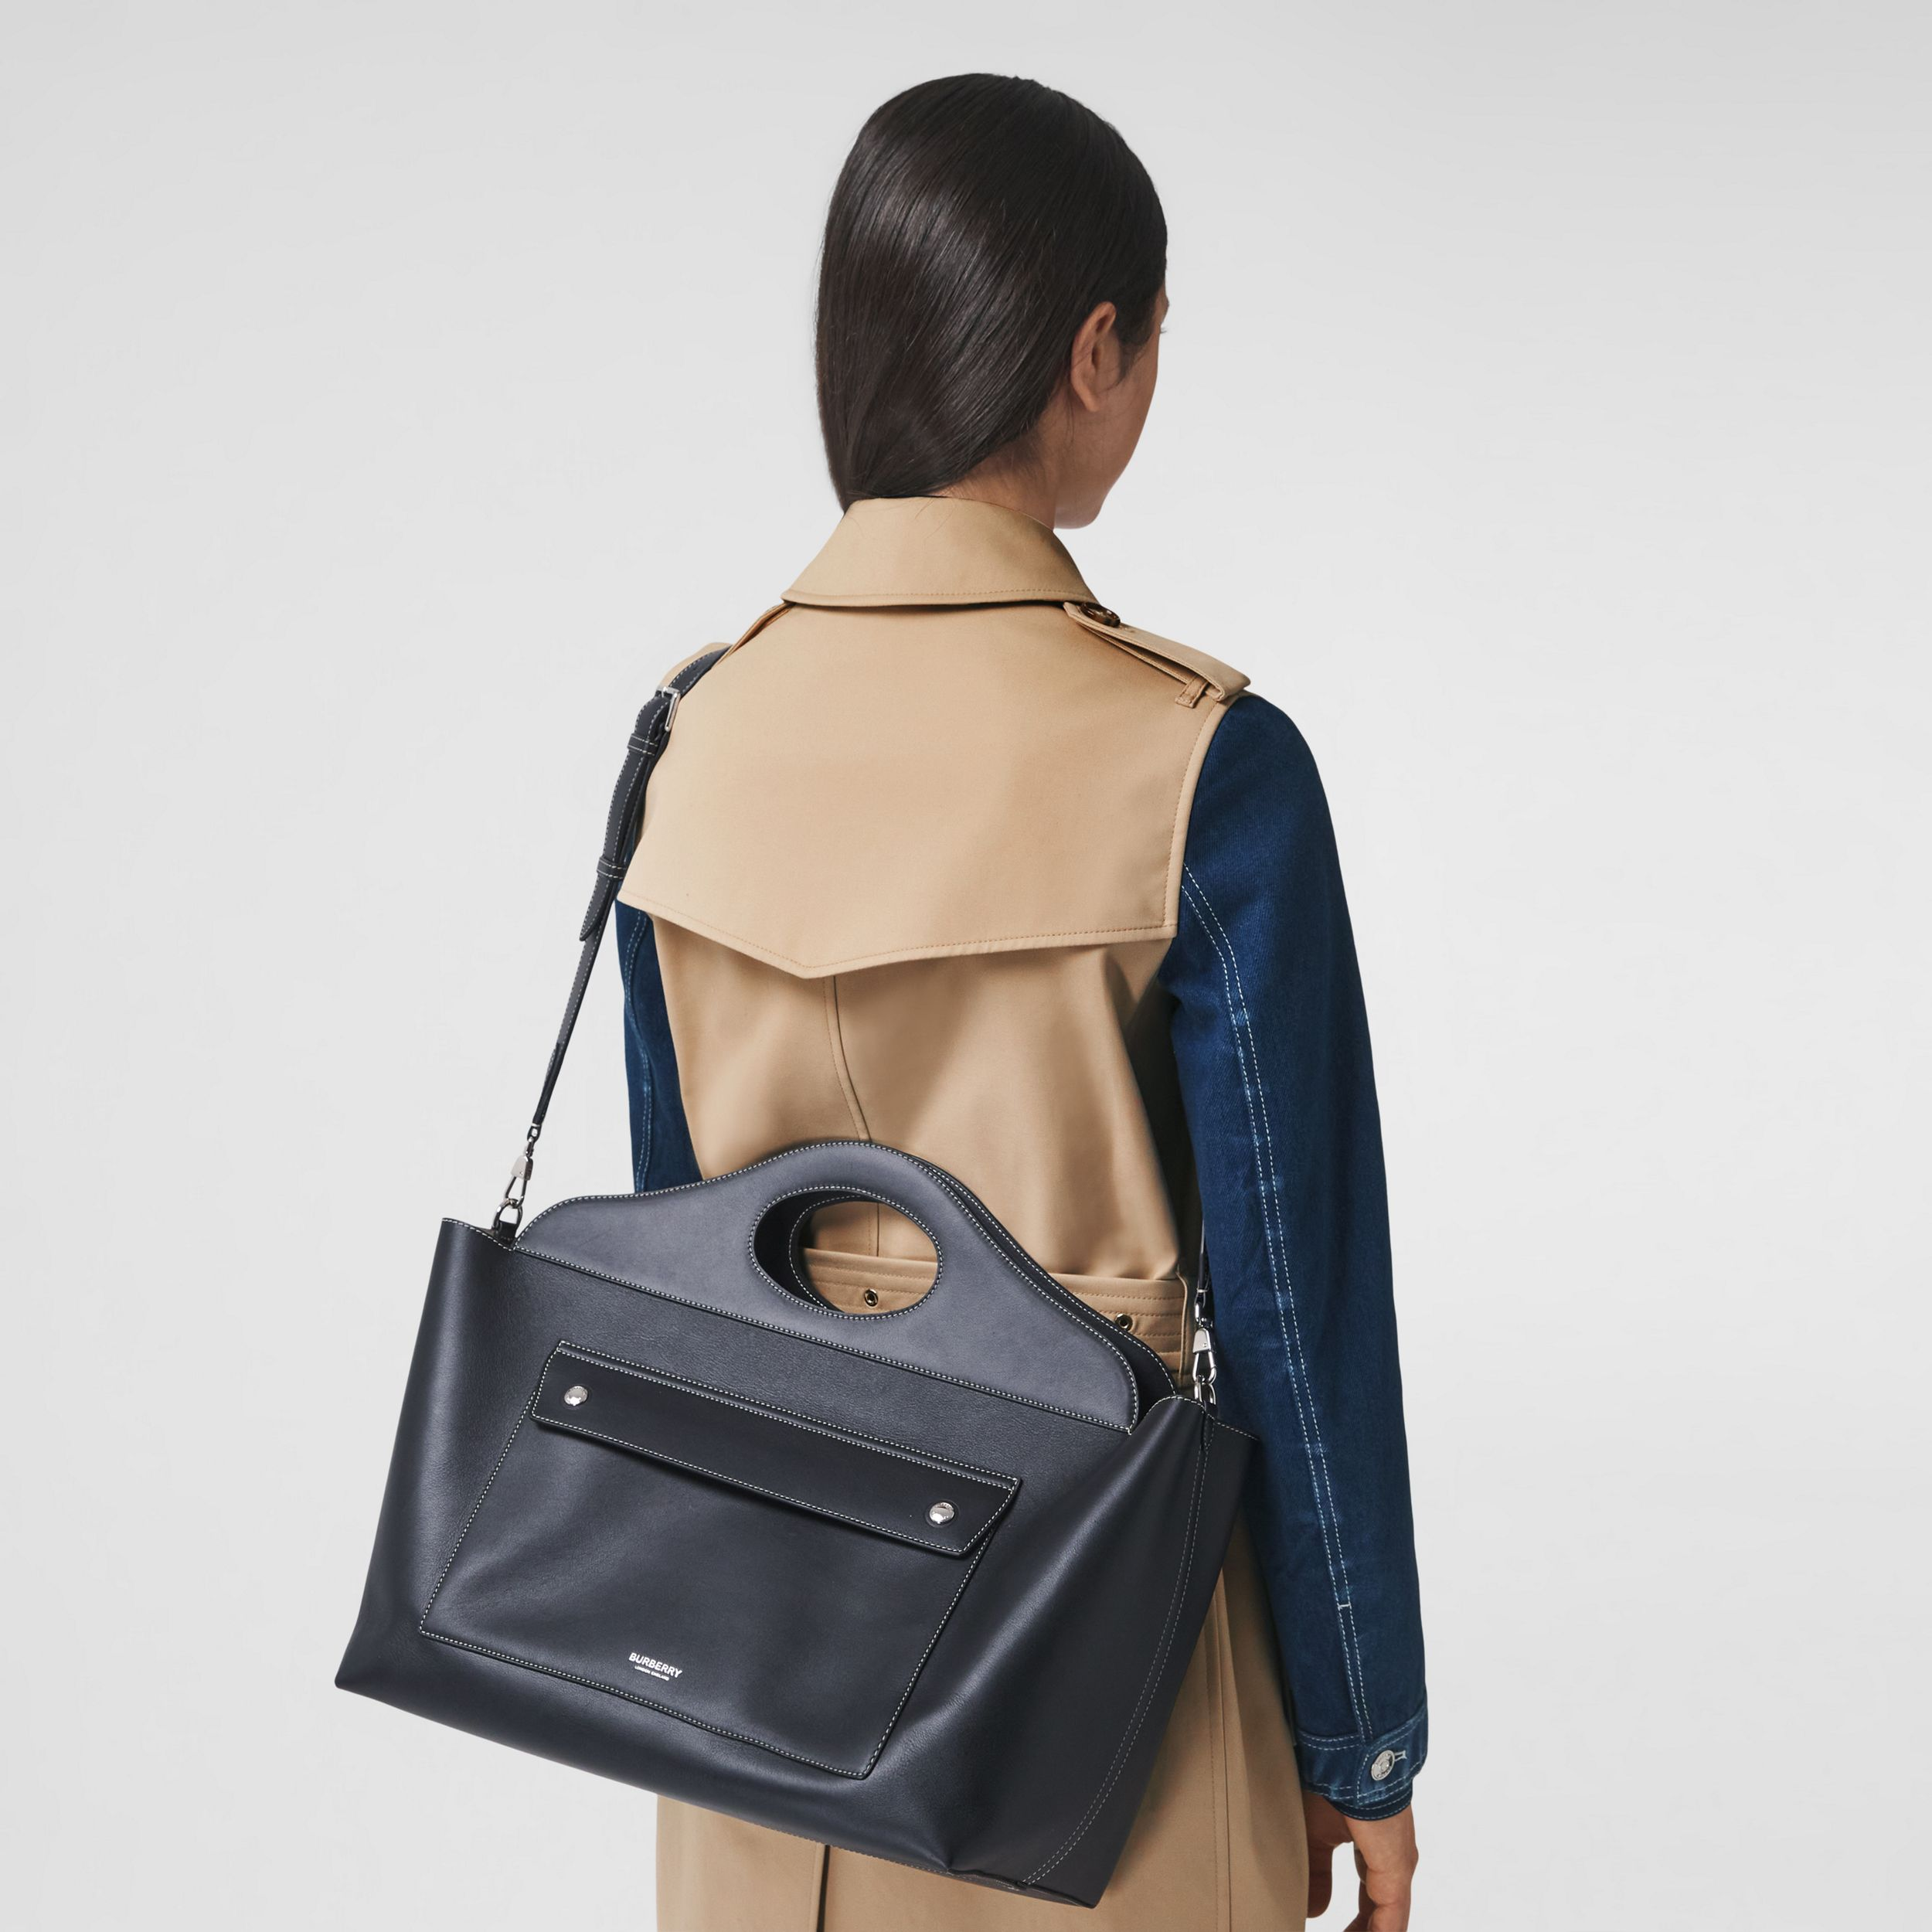 Medium Leather Soft Pocket Tote in Black - Women | Burberry - 3